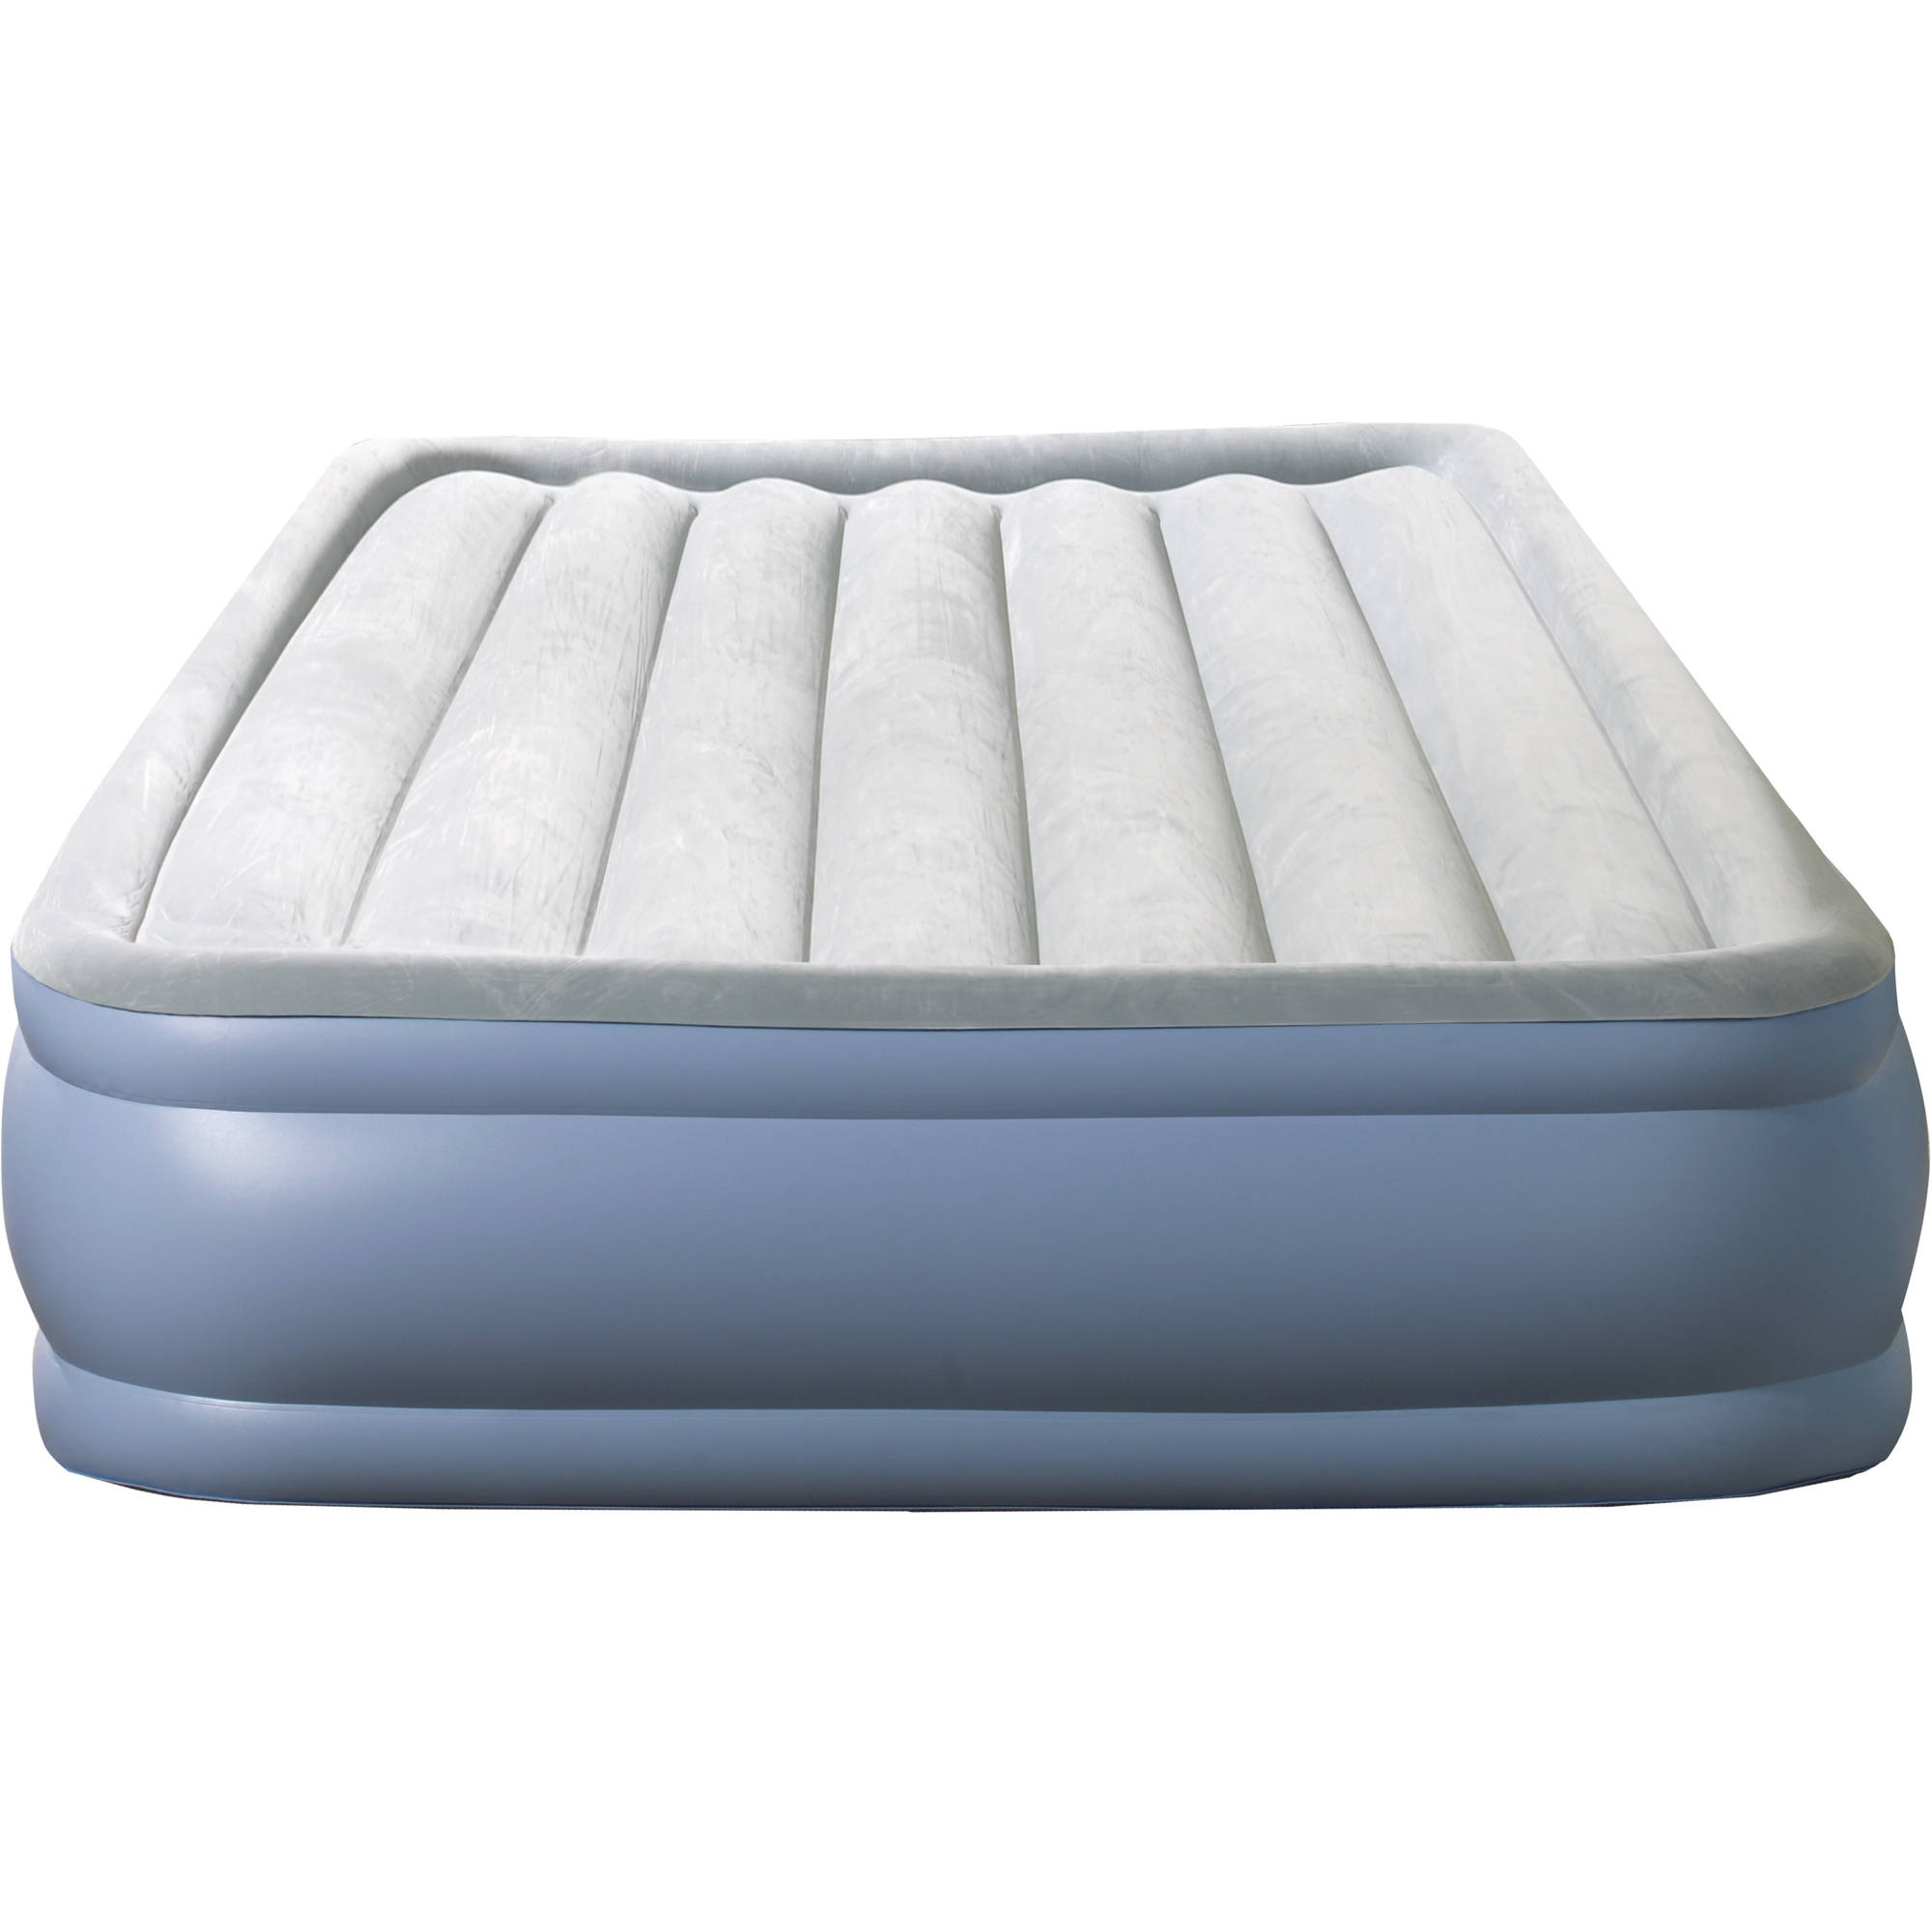 Simmons Beautyrest Pocketed Coil Mattress | Beautyrest Recharge World Class | Simmons Beautyrest Mattress